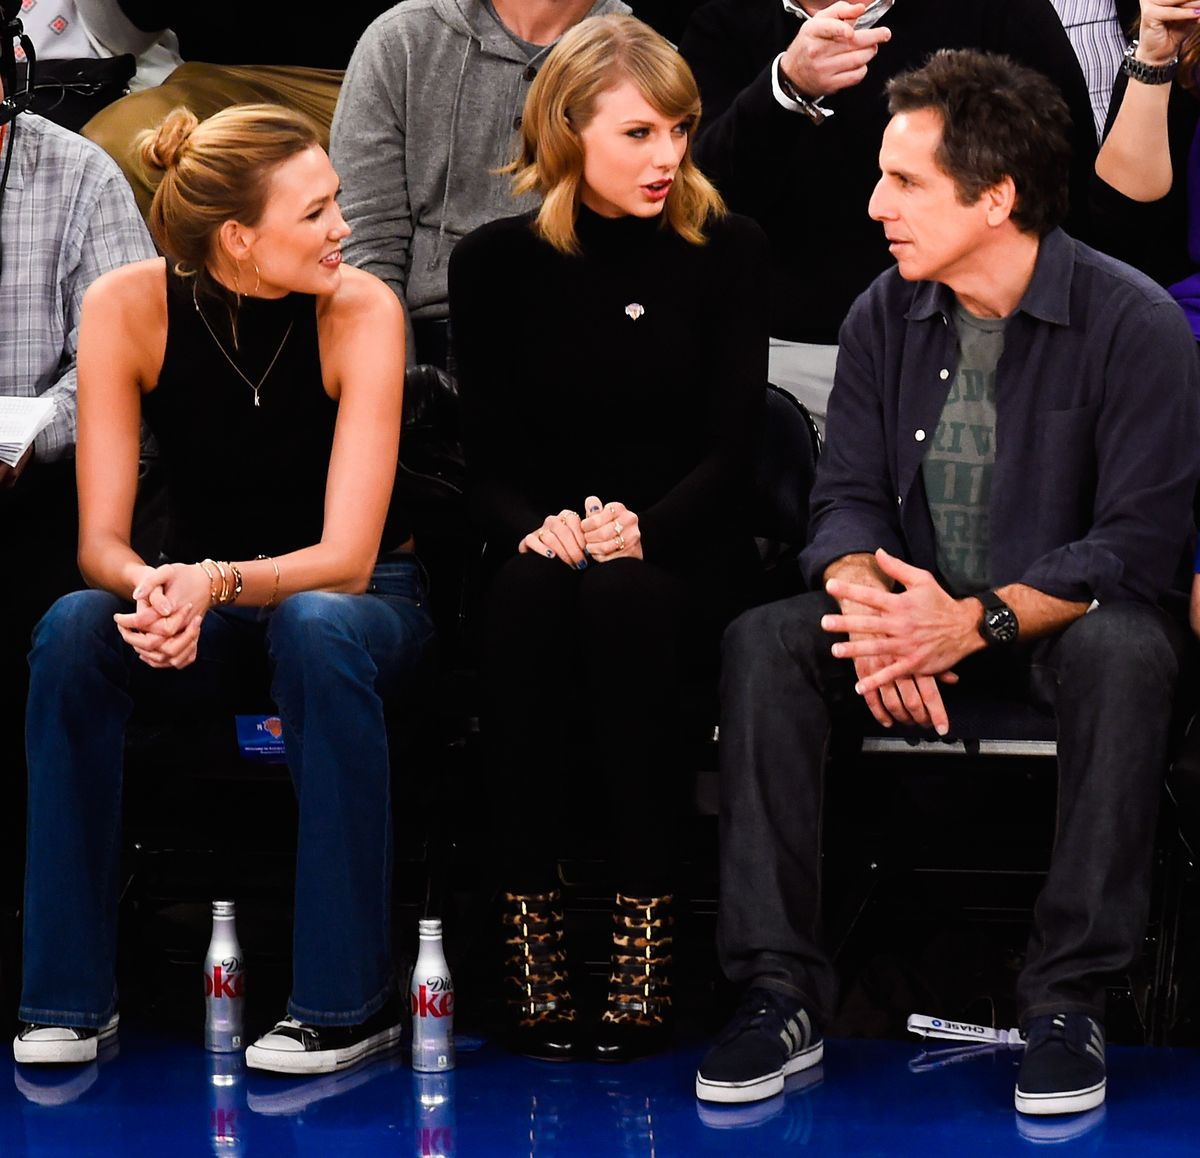 NEW YORK, NY - OCTOBER 29: Taylor Swift sits next to Karlie Kloss and Ben Stiller during a game between the New York Knicks and Chicago Bulls at Madison Square Garden on October 29, 2014 in New York City. NOTE TO USER: User expressly acknowledges and agrees that, by downloading and/or using this photograph, user is consenting to the terms and conditions of the Getty Images License Agreement. (Photo by Alex Goodlett/Getty Images)